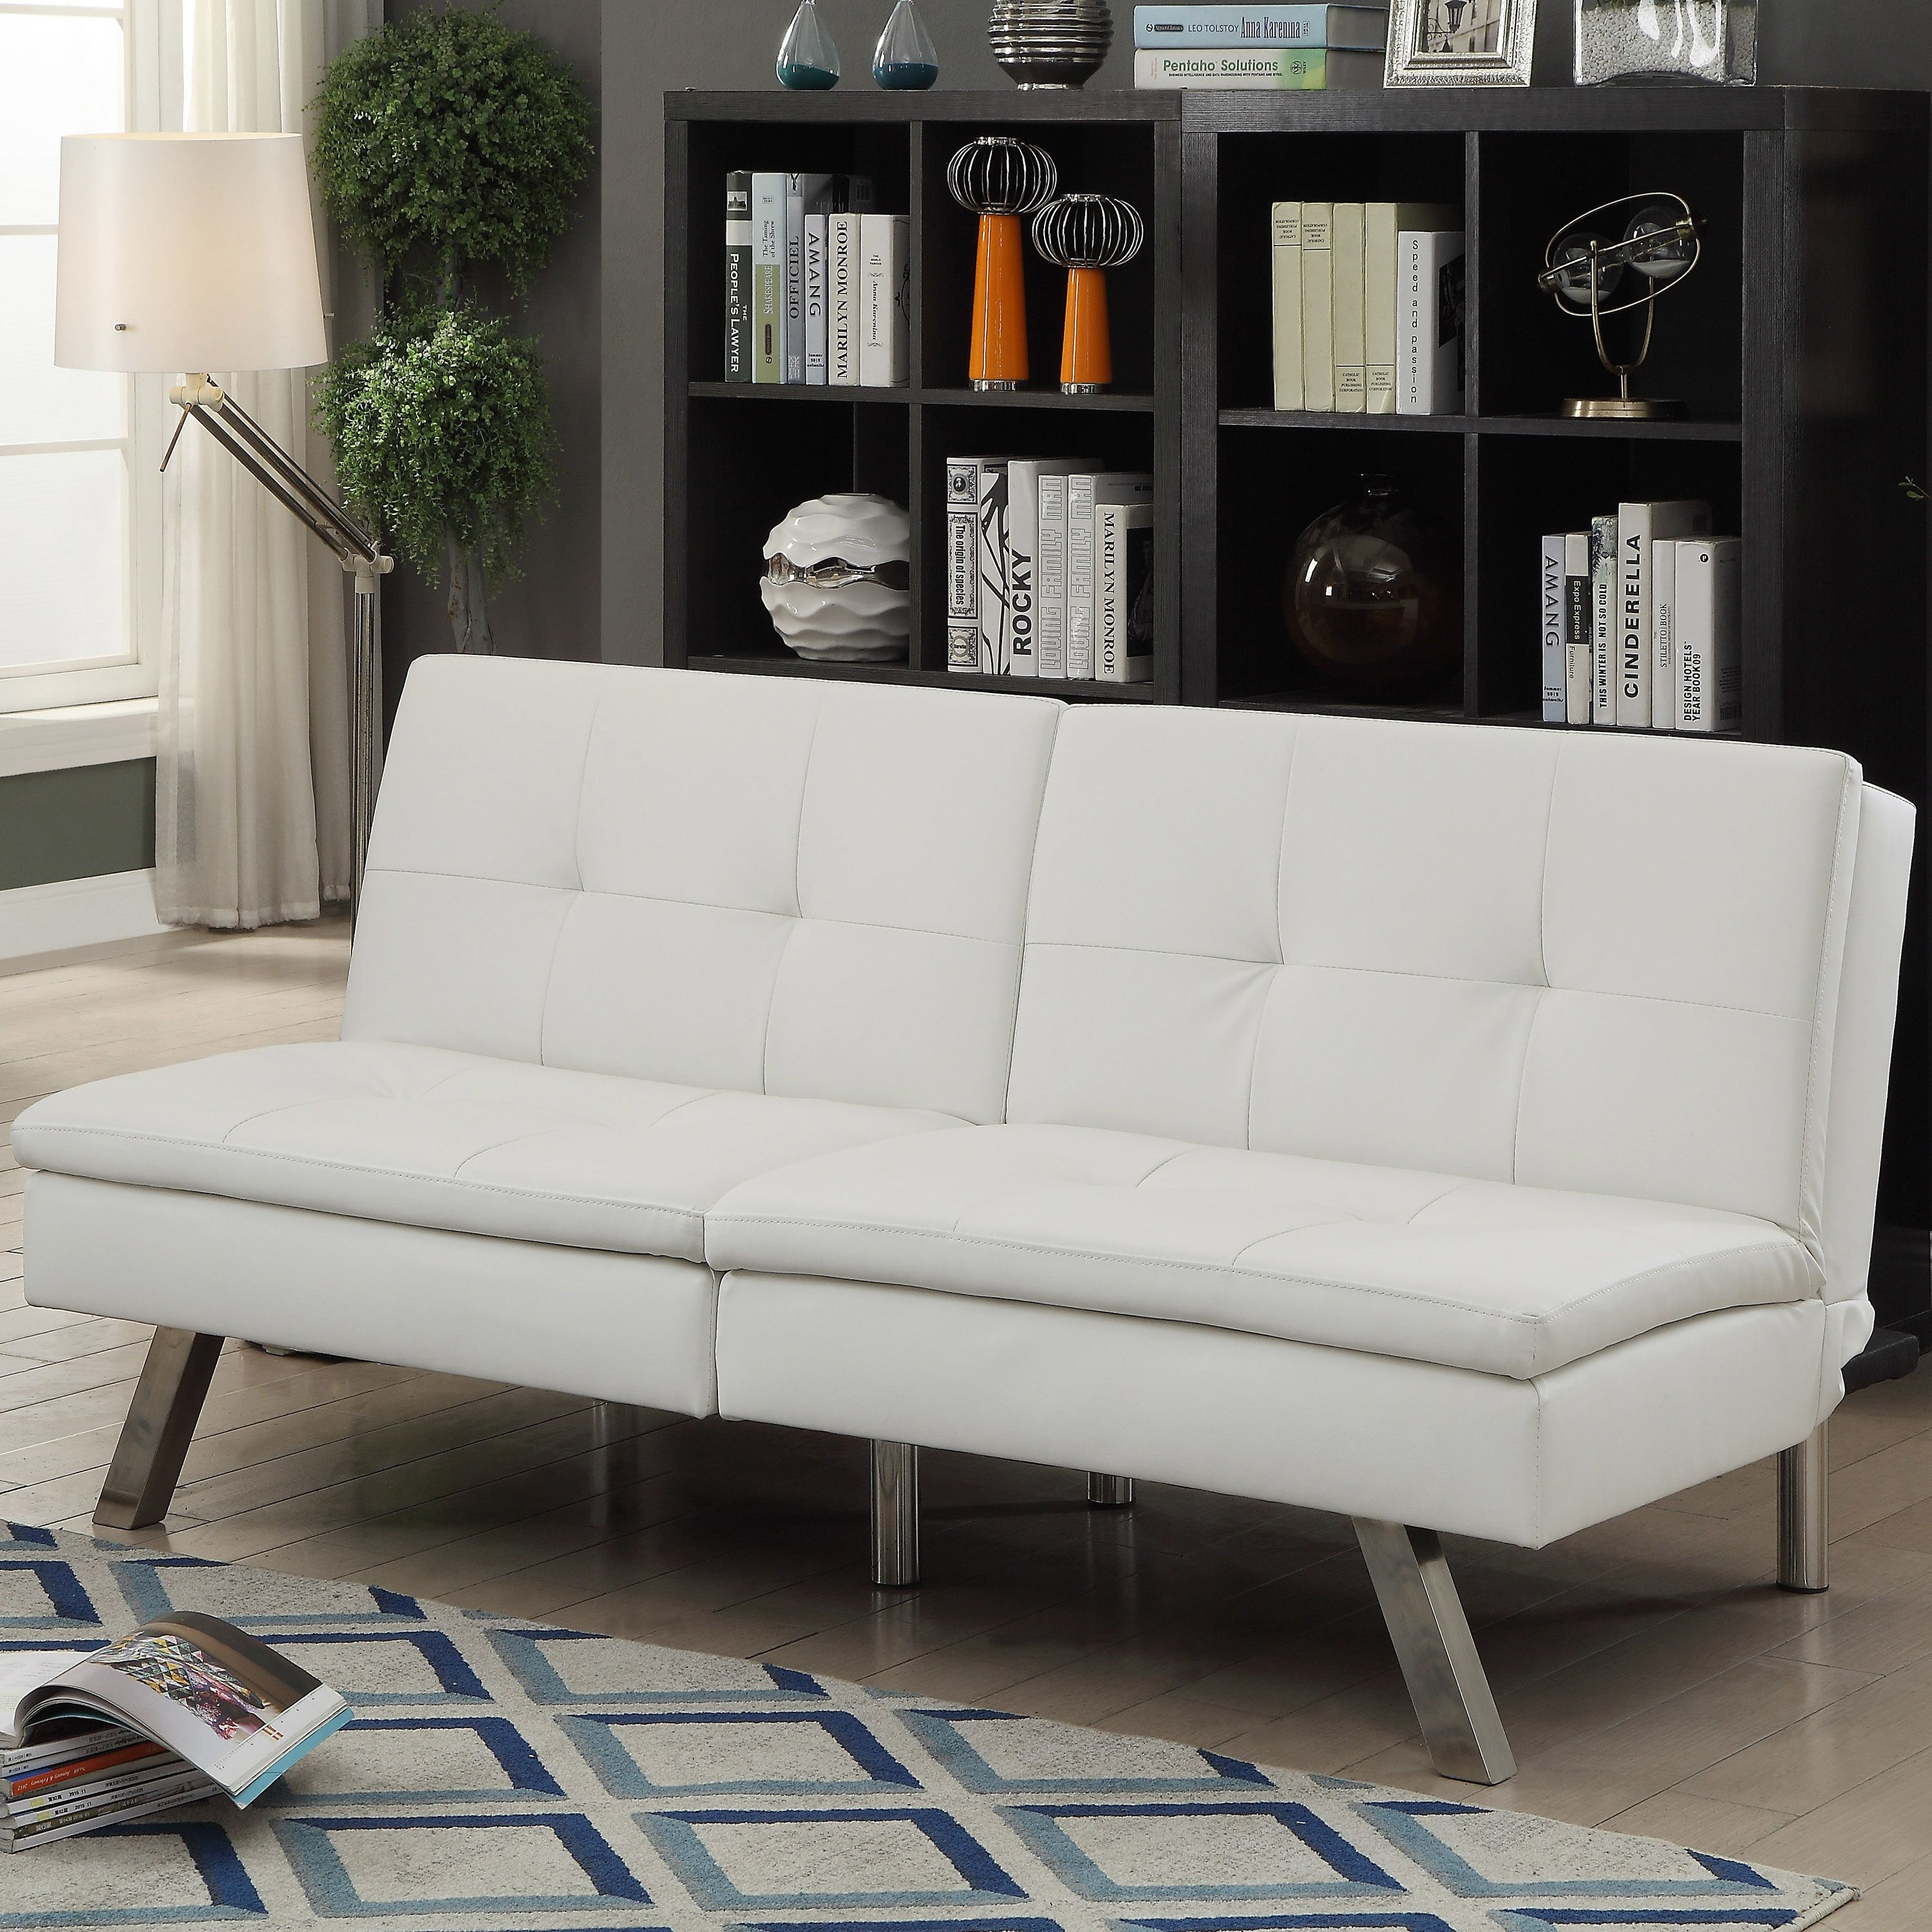 Furniture of America Stensall Contemporary Tufted Leatherette Split